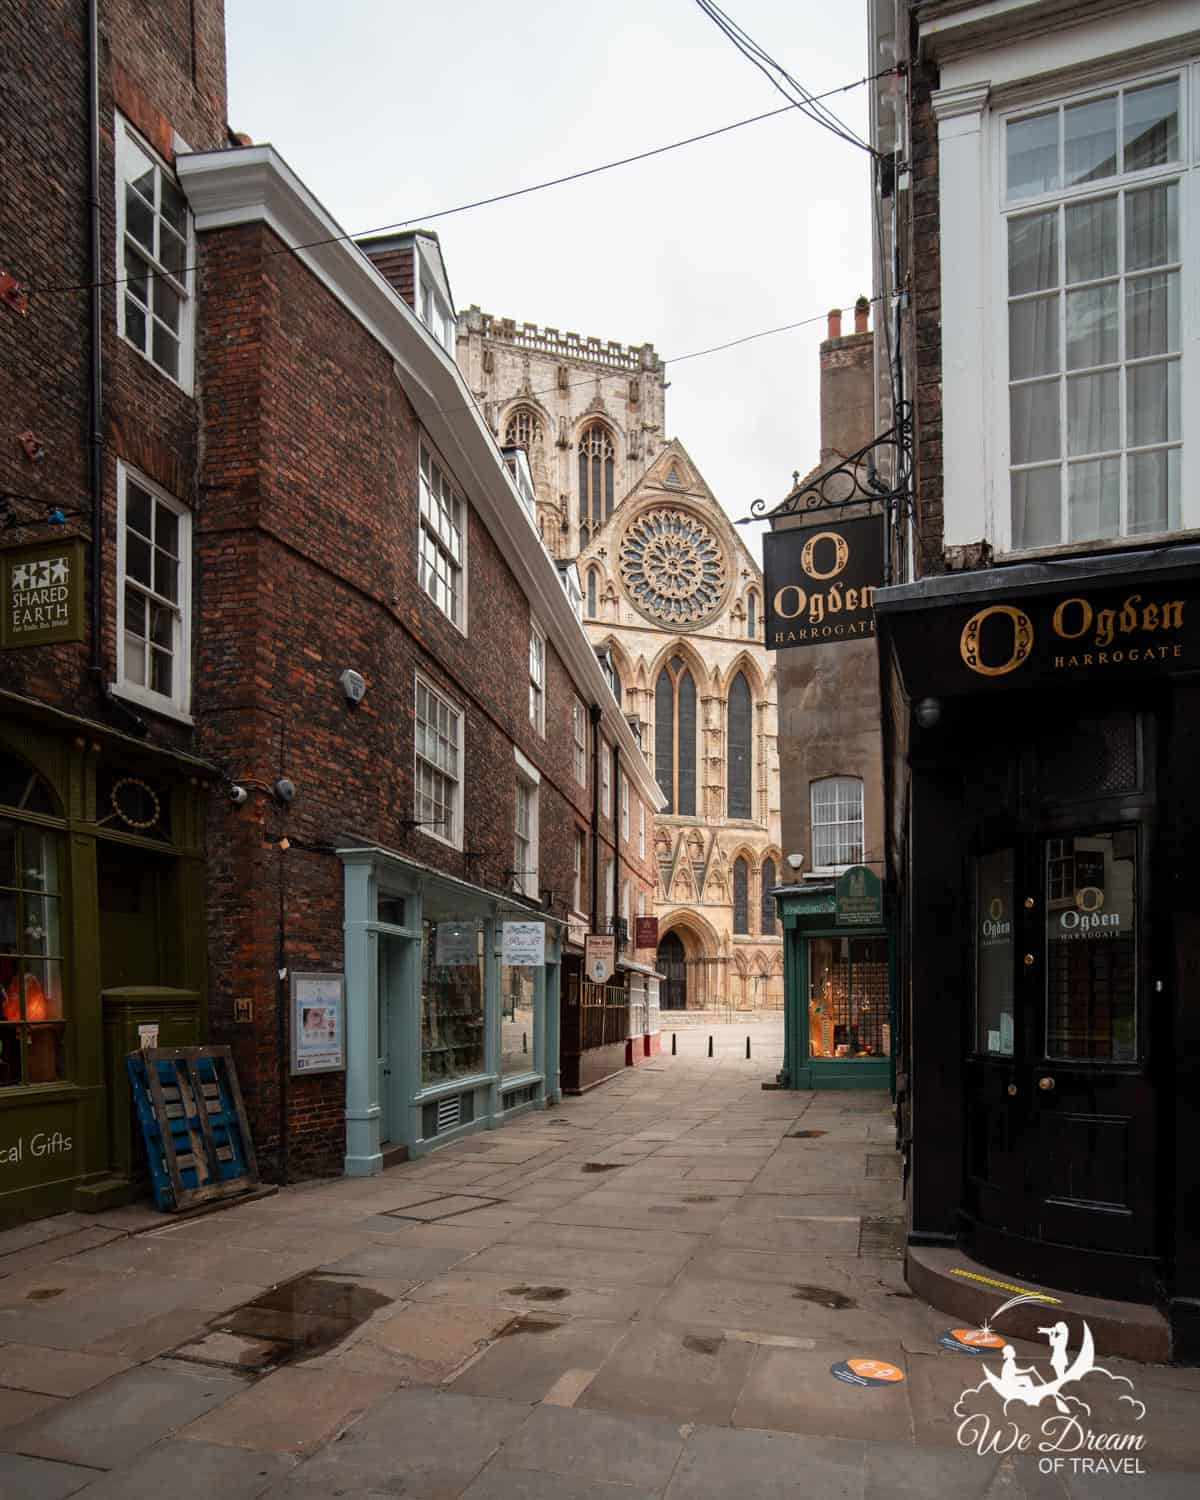 York Minster visible at the end of Minster Street, a narrow street